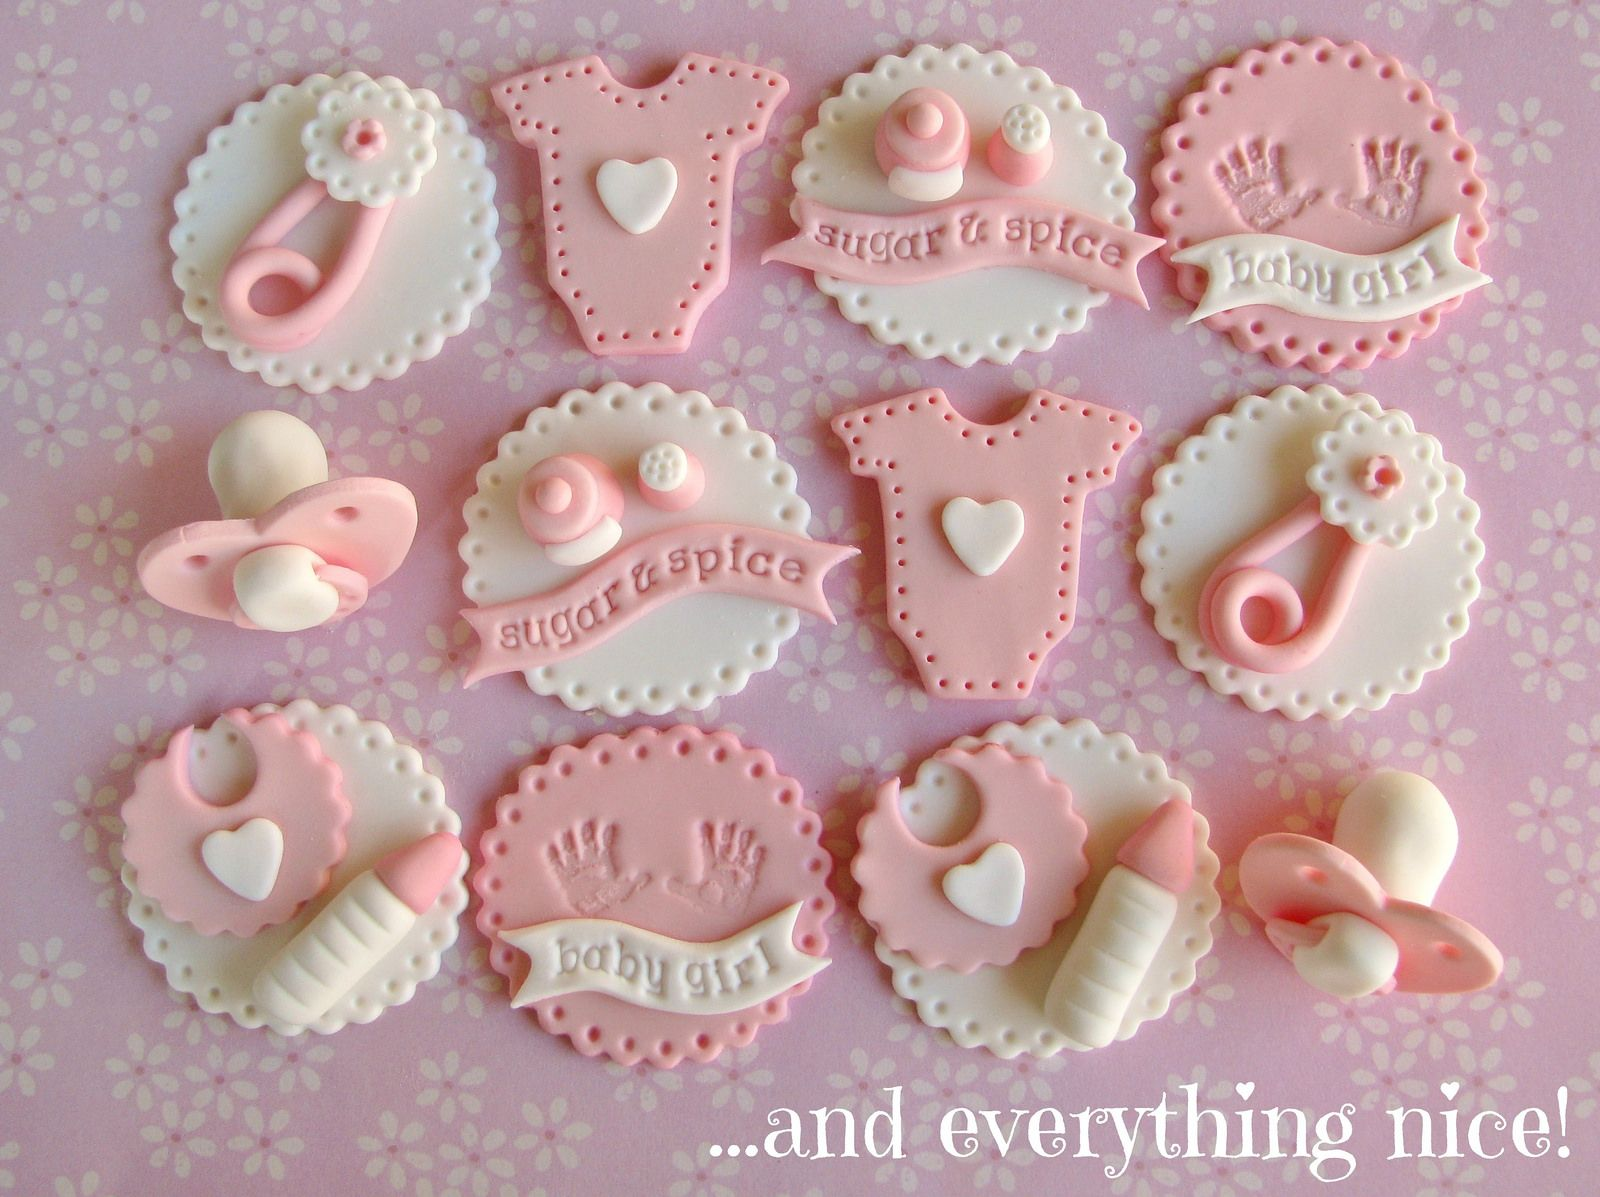 Baby shower fondant cupcake toppers 4 pieces total